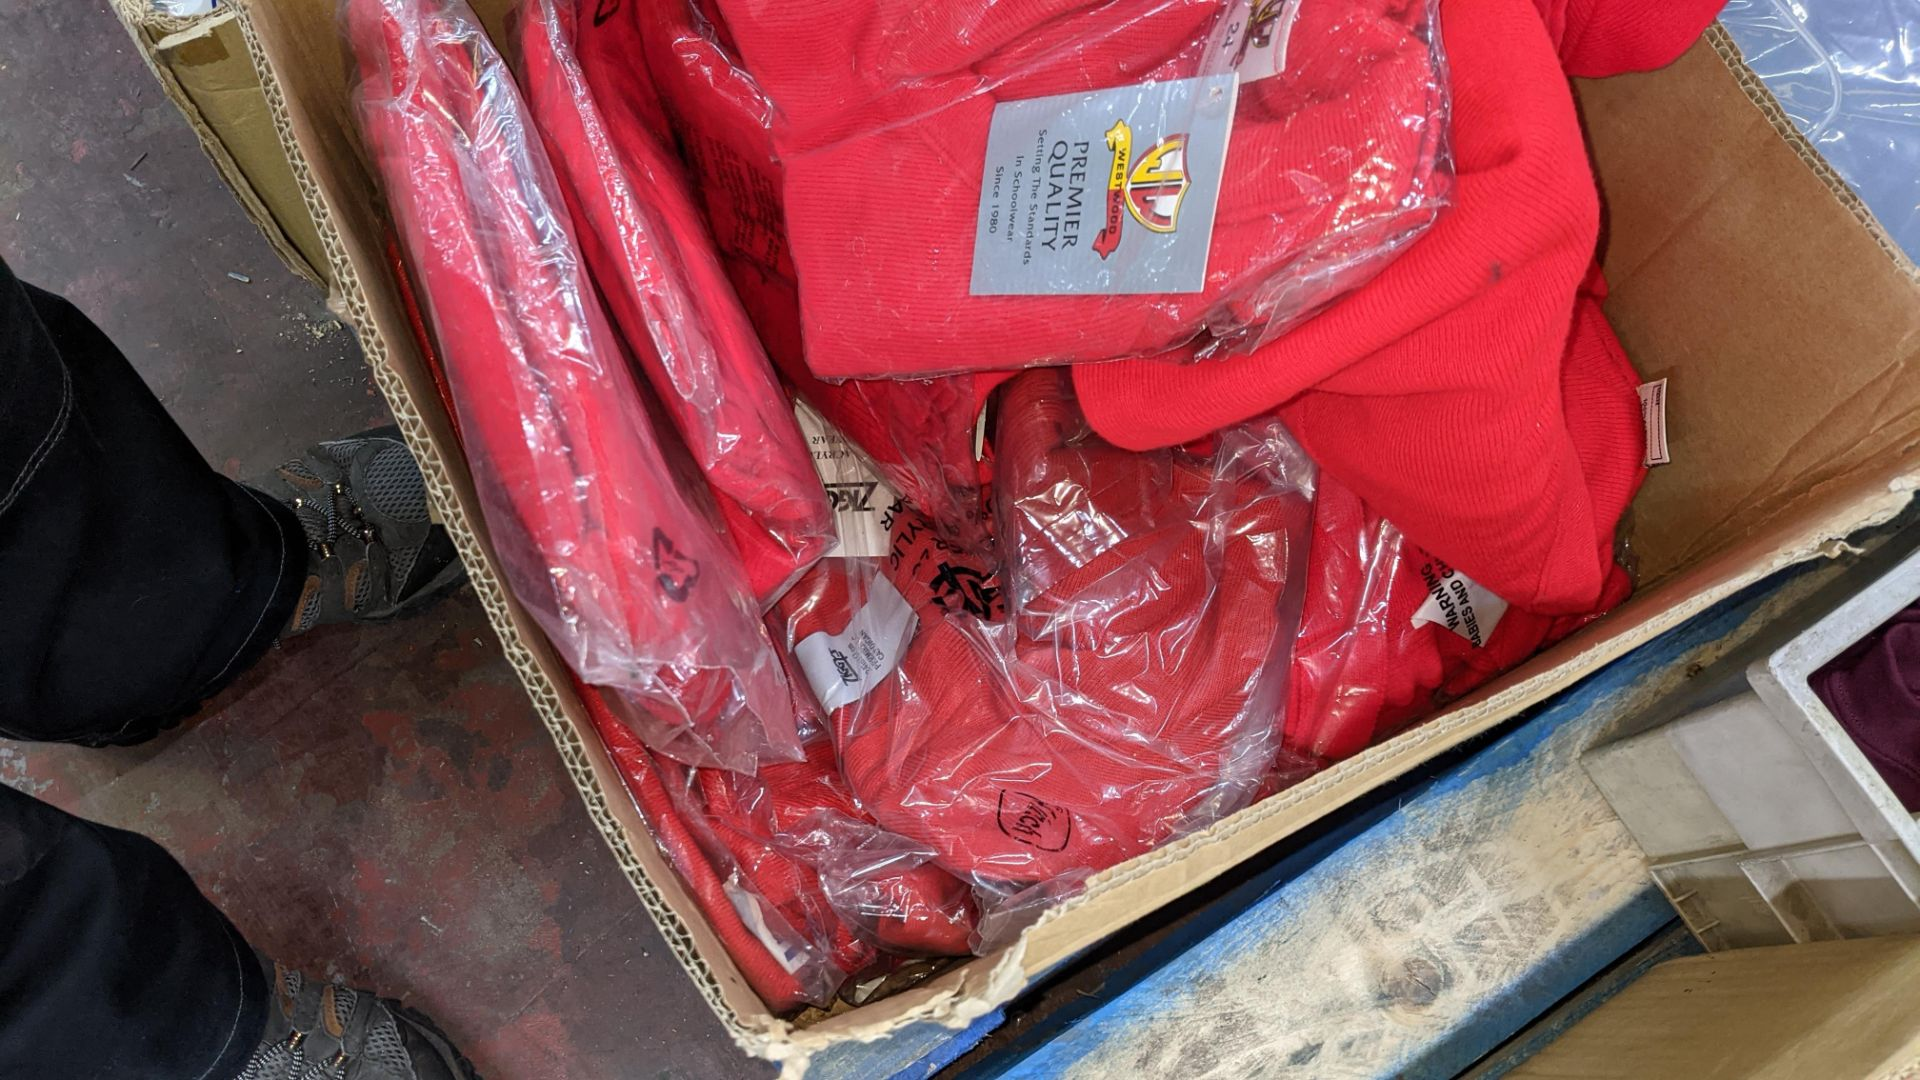 Approx 17 off children's red knitted tops - the contents of 1 box - Image 4 of 4